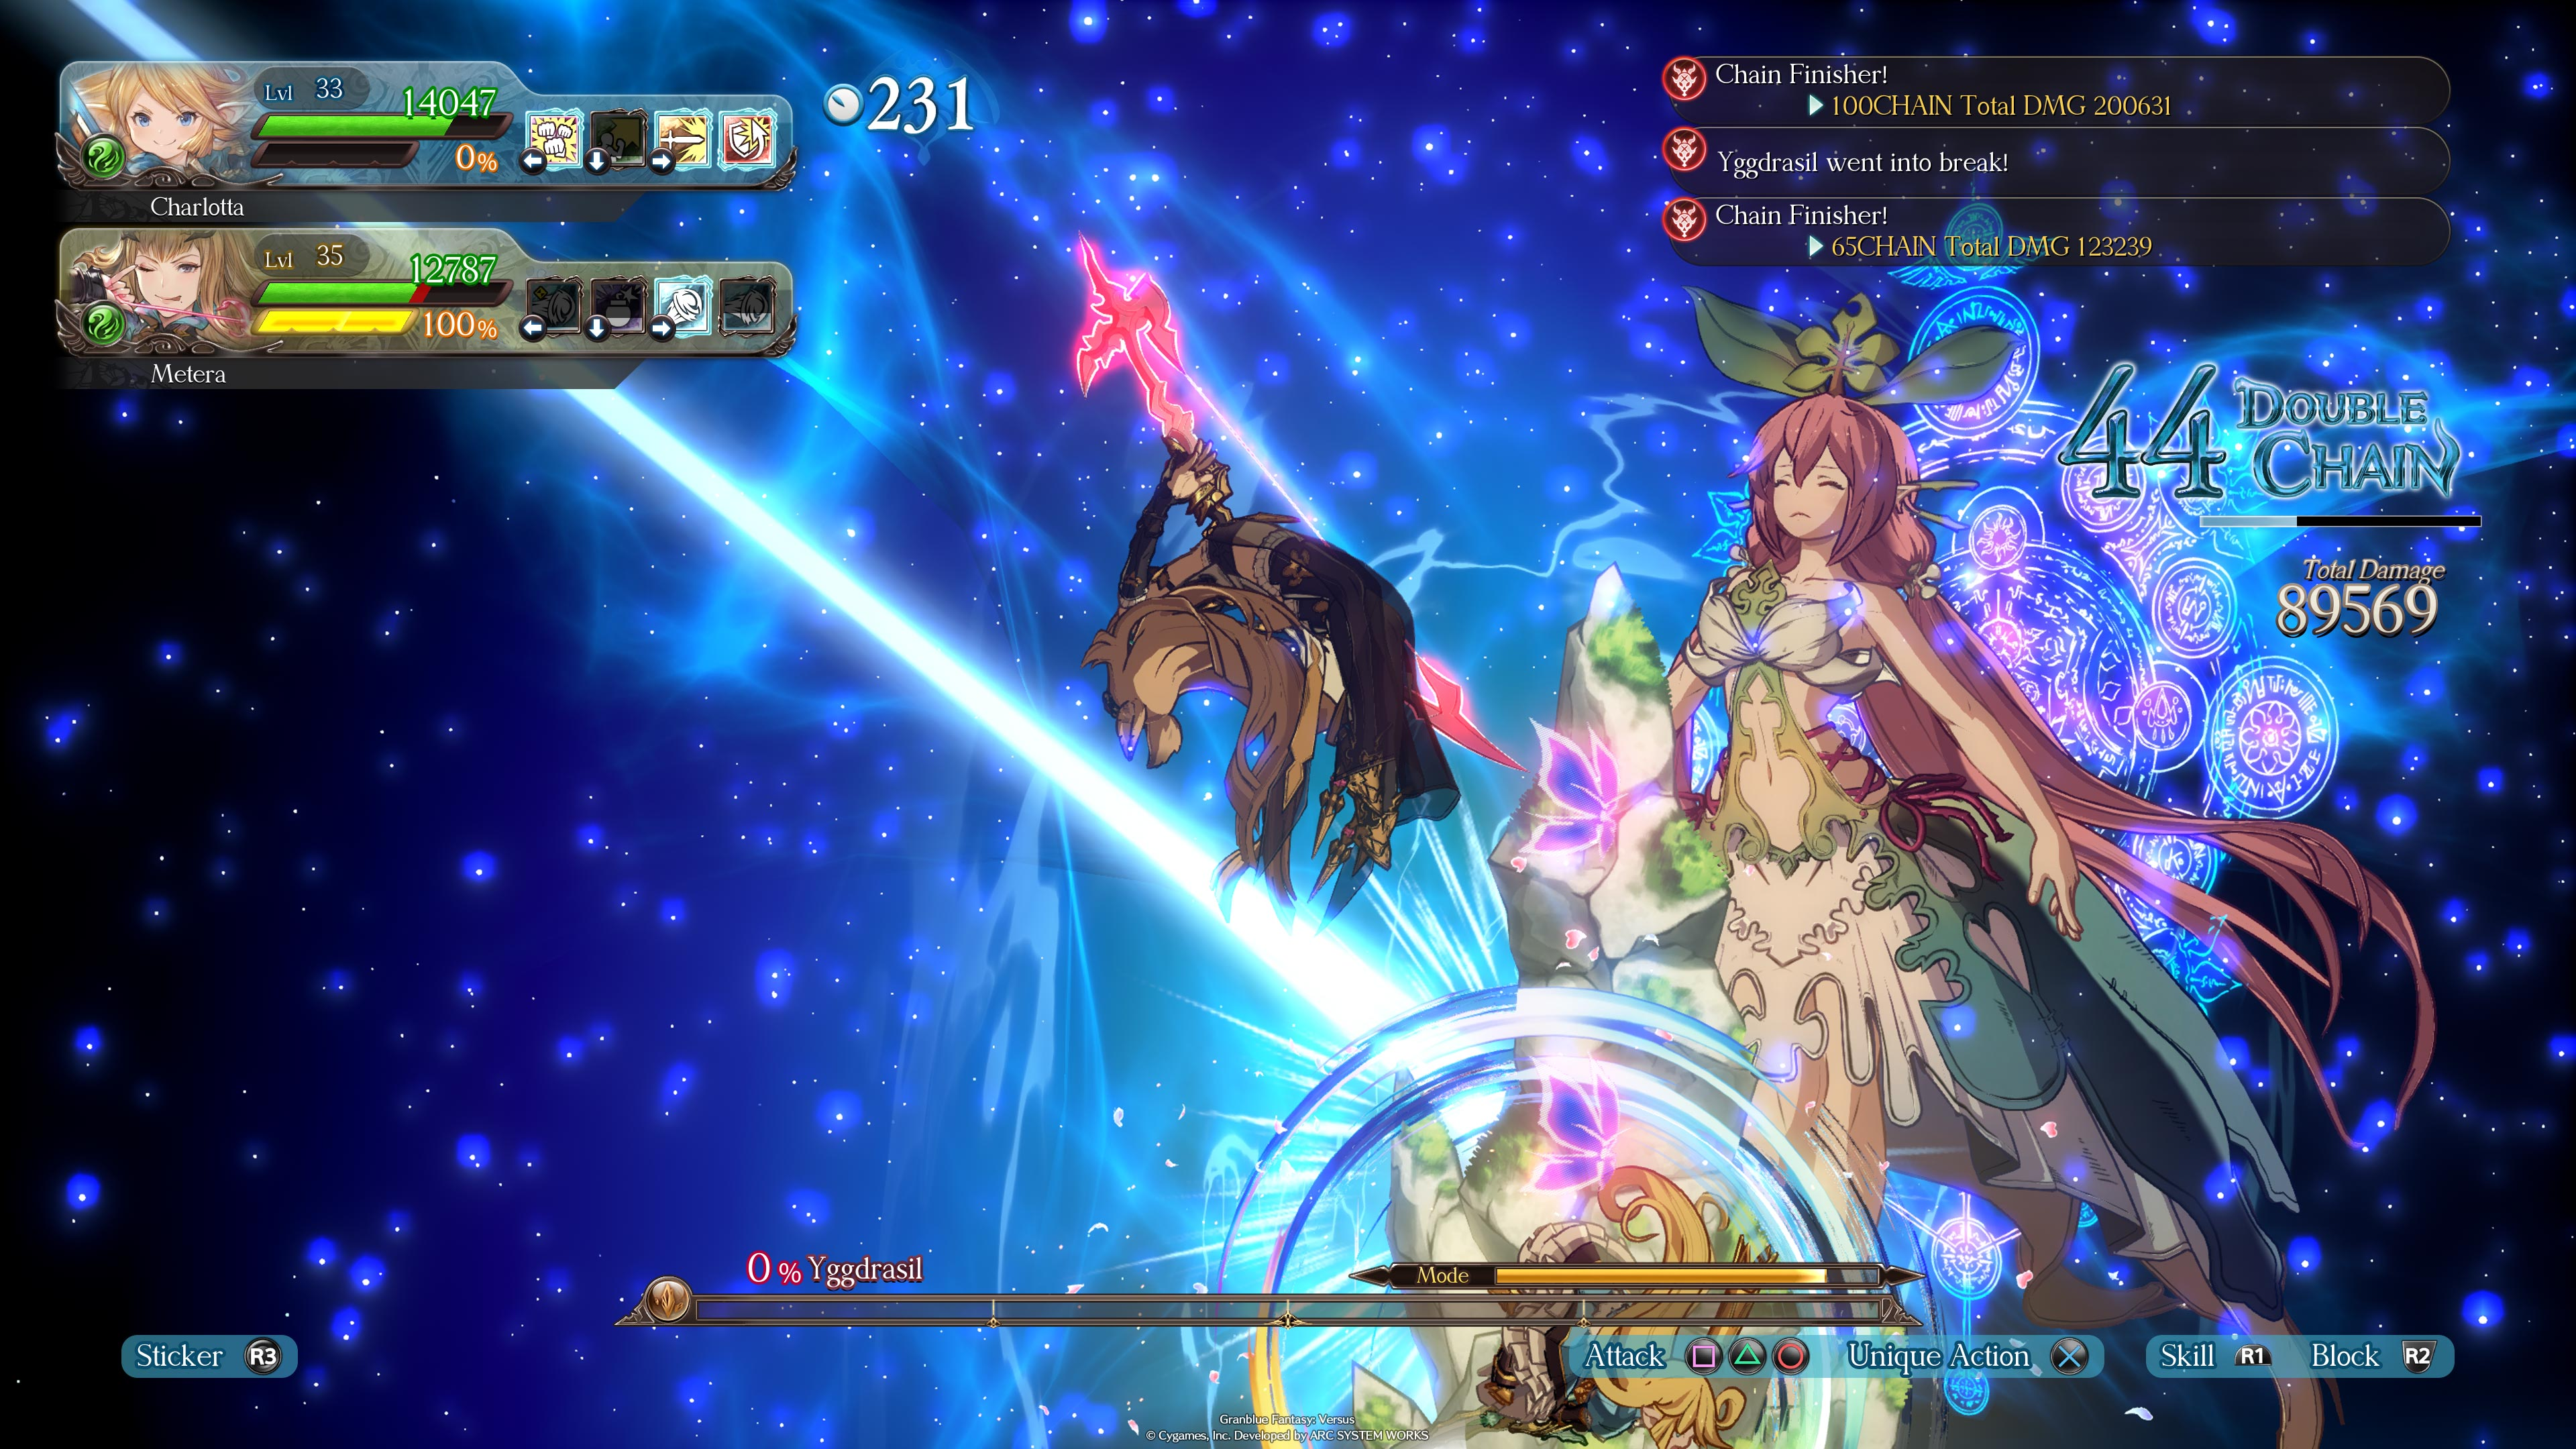 Granblue Fantasy: Versus review 3 out of 3 image gallery